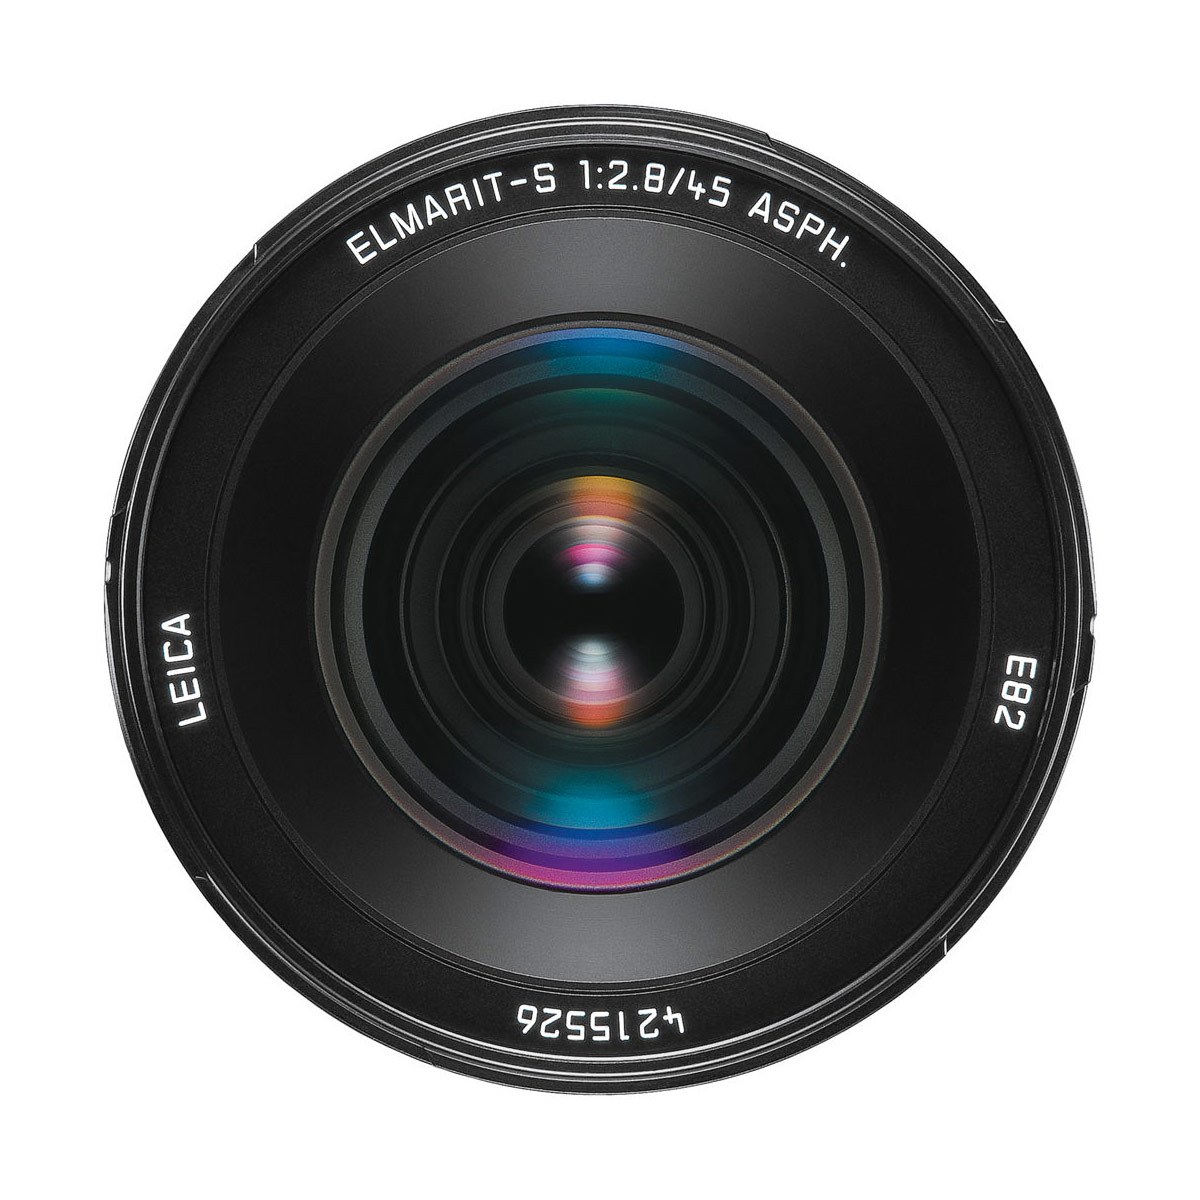 Leica Elmarit-S 45mm f/2.8 Asph Lens - Front Element